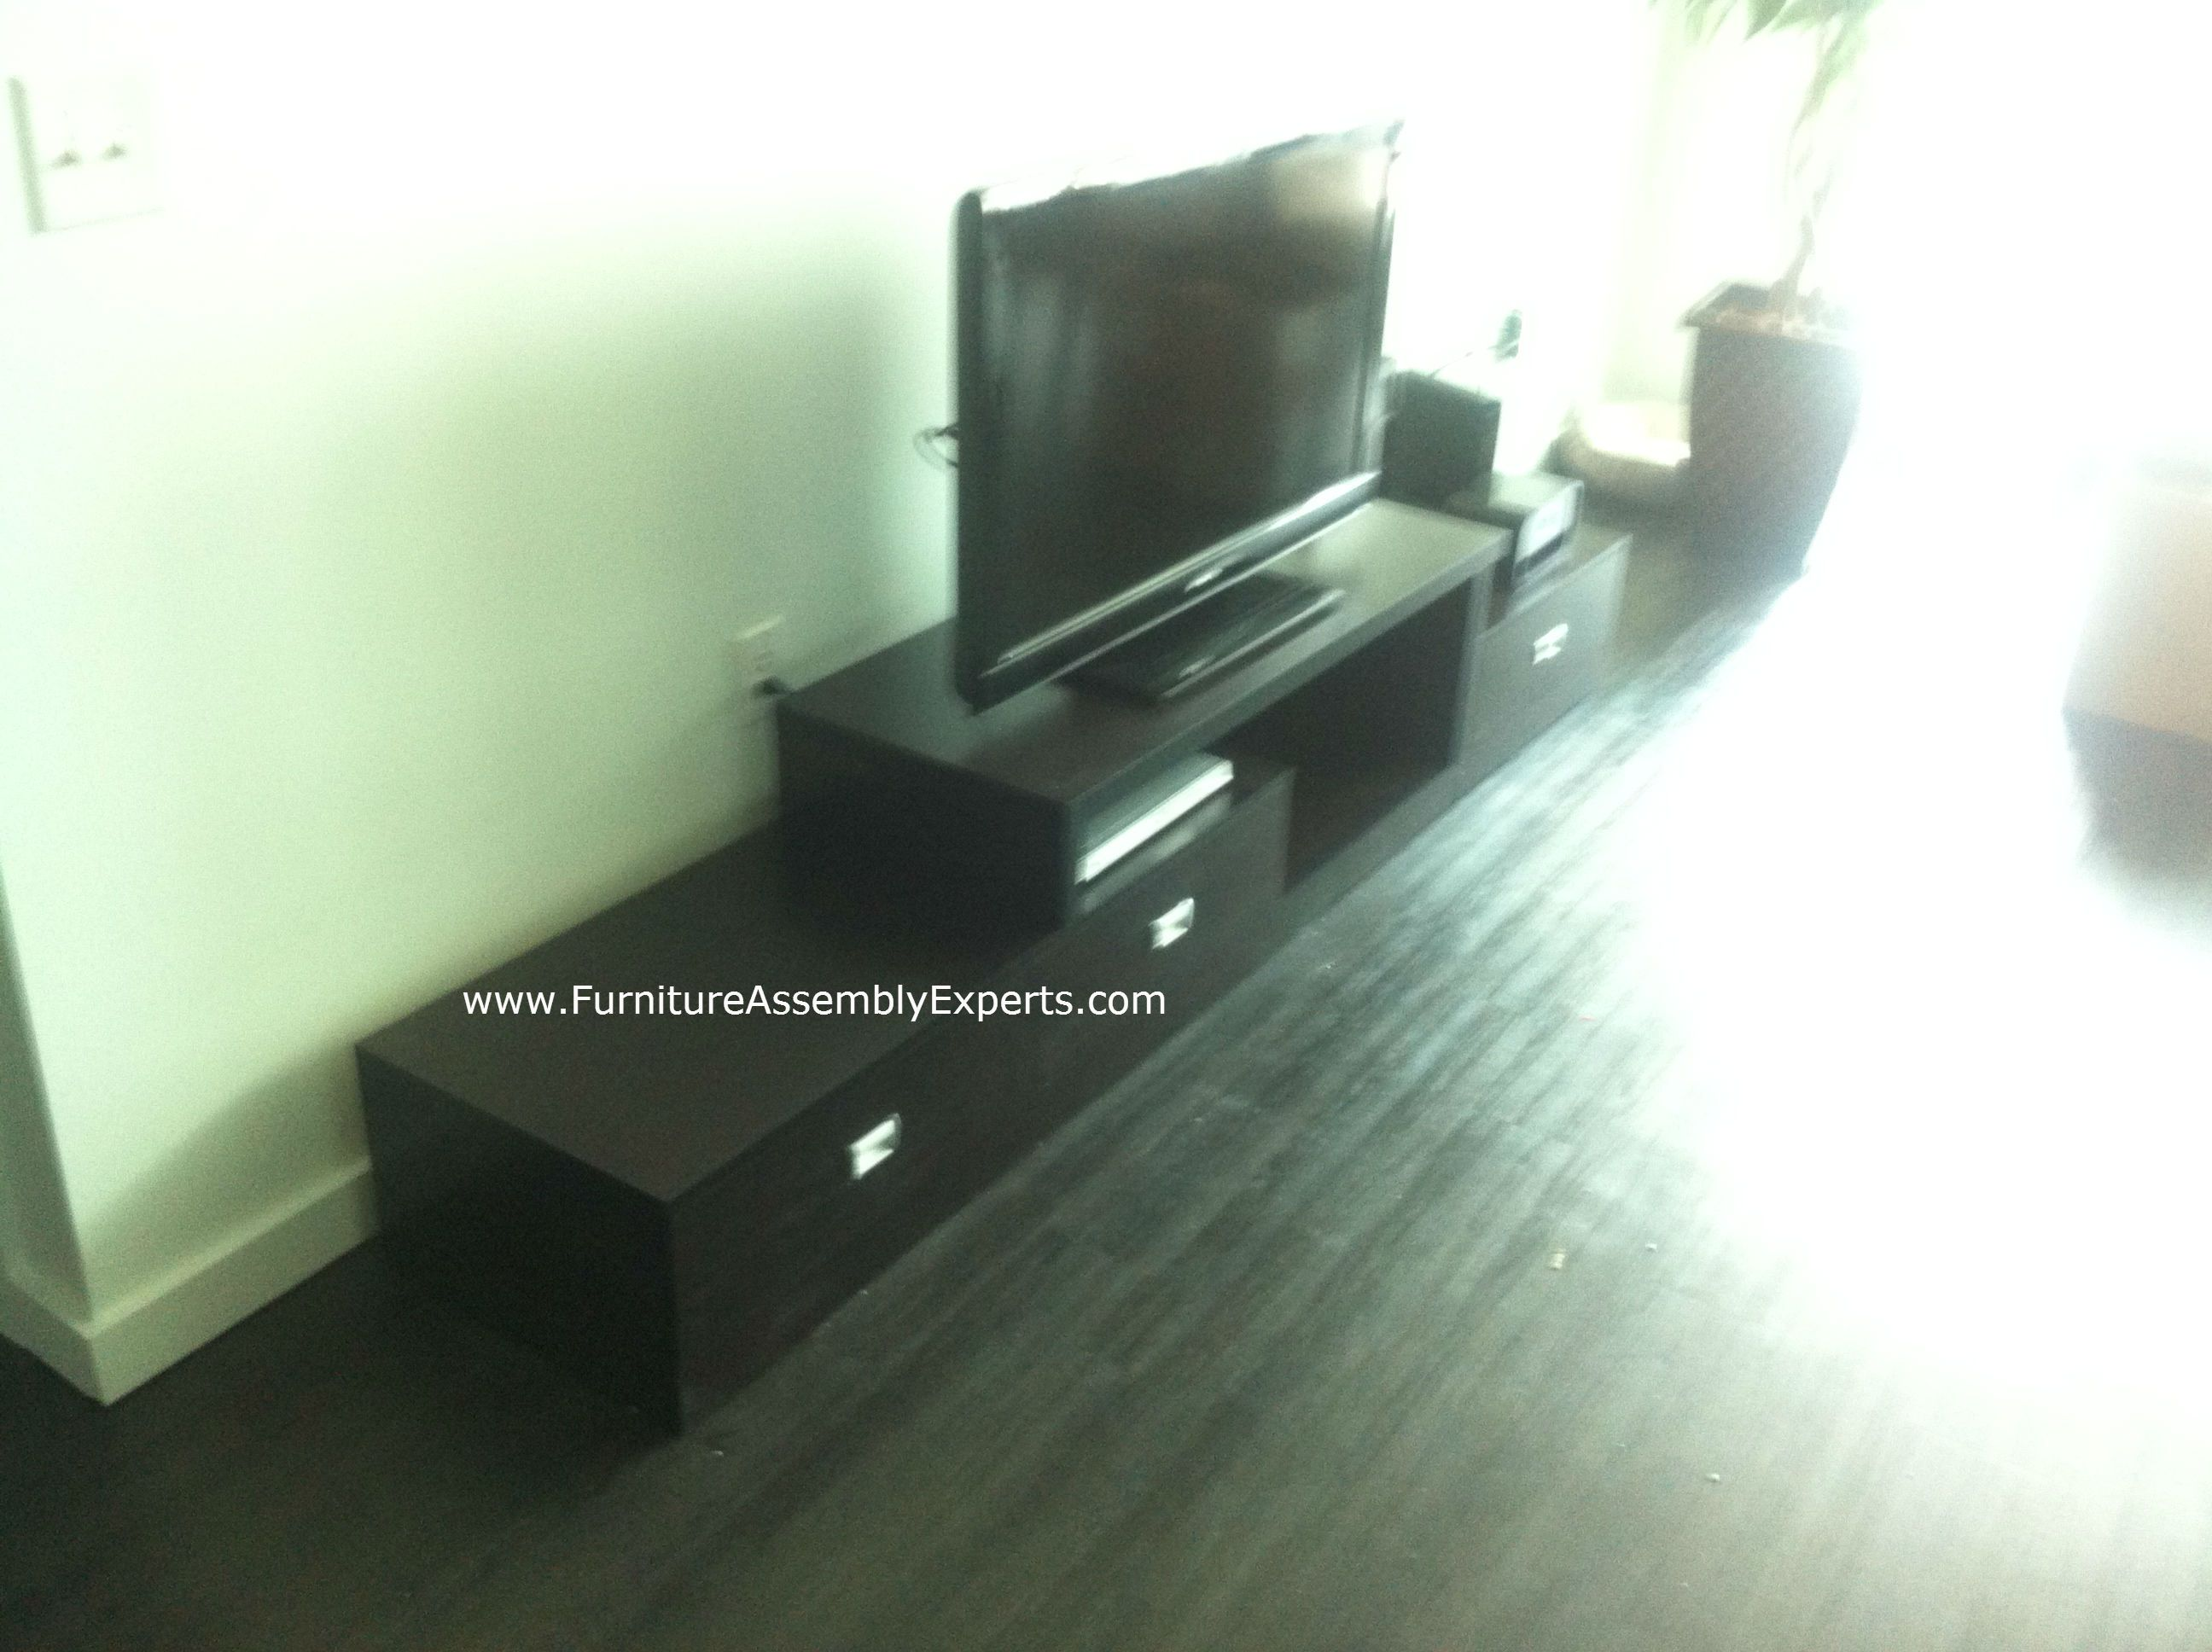 Overstock Marconi Brown Asymmetrical Modern TV Stand Assembled In Baltimore  MD By Furniture Assembly Experts At